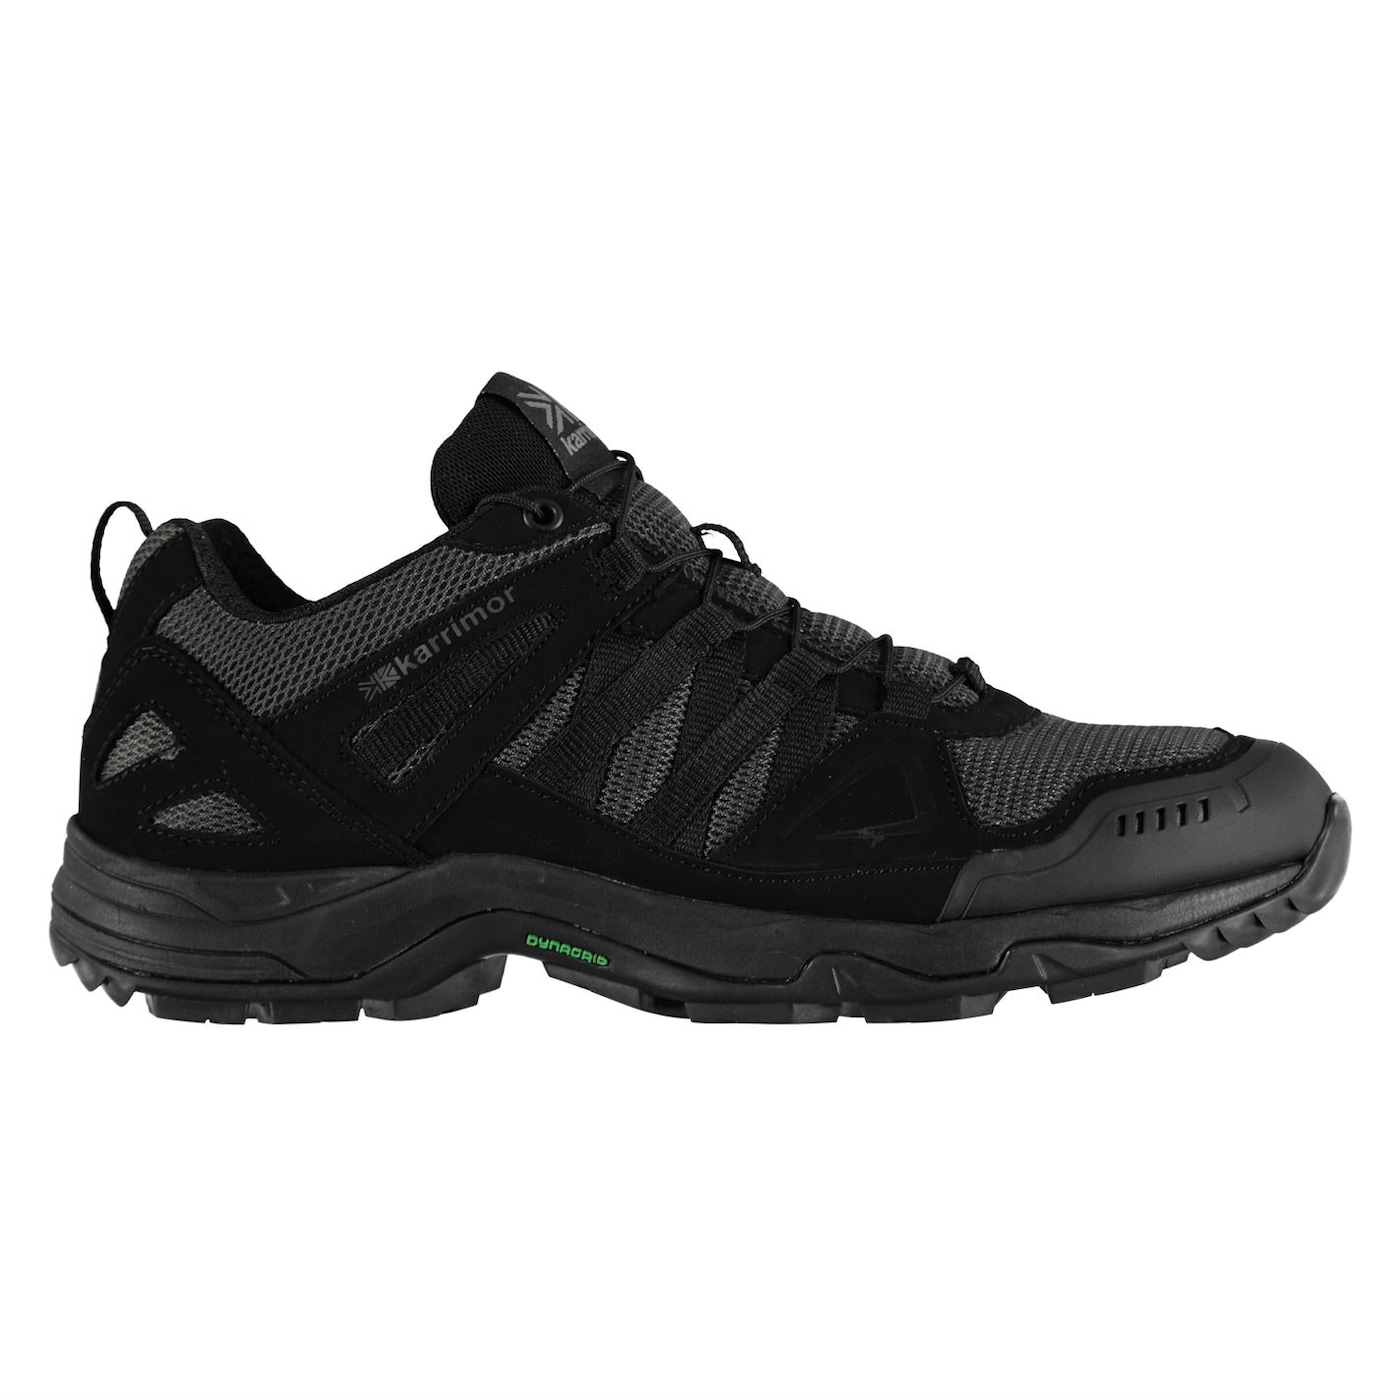 Karrimor Surge Low Mens Walking Shoes